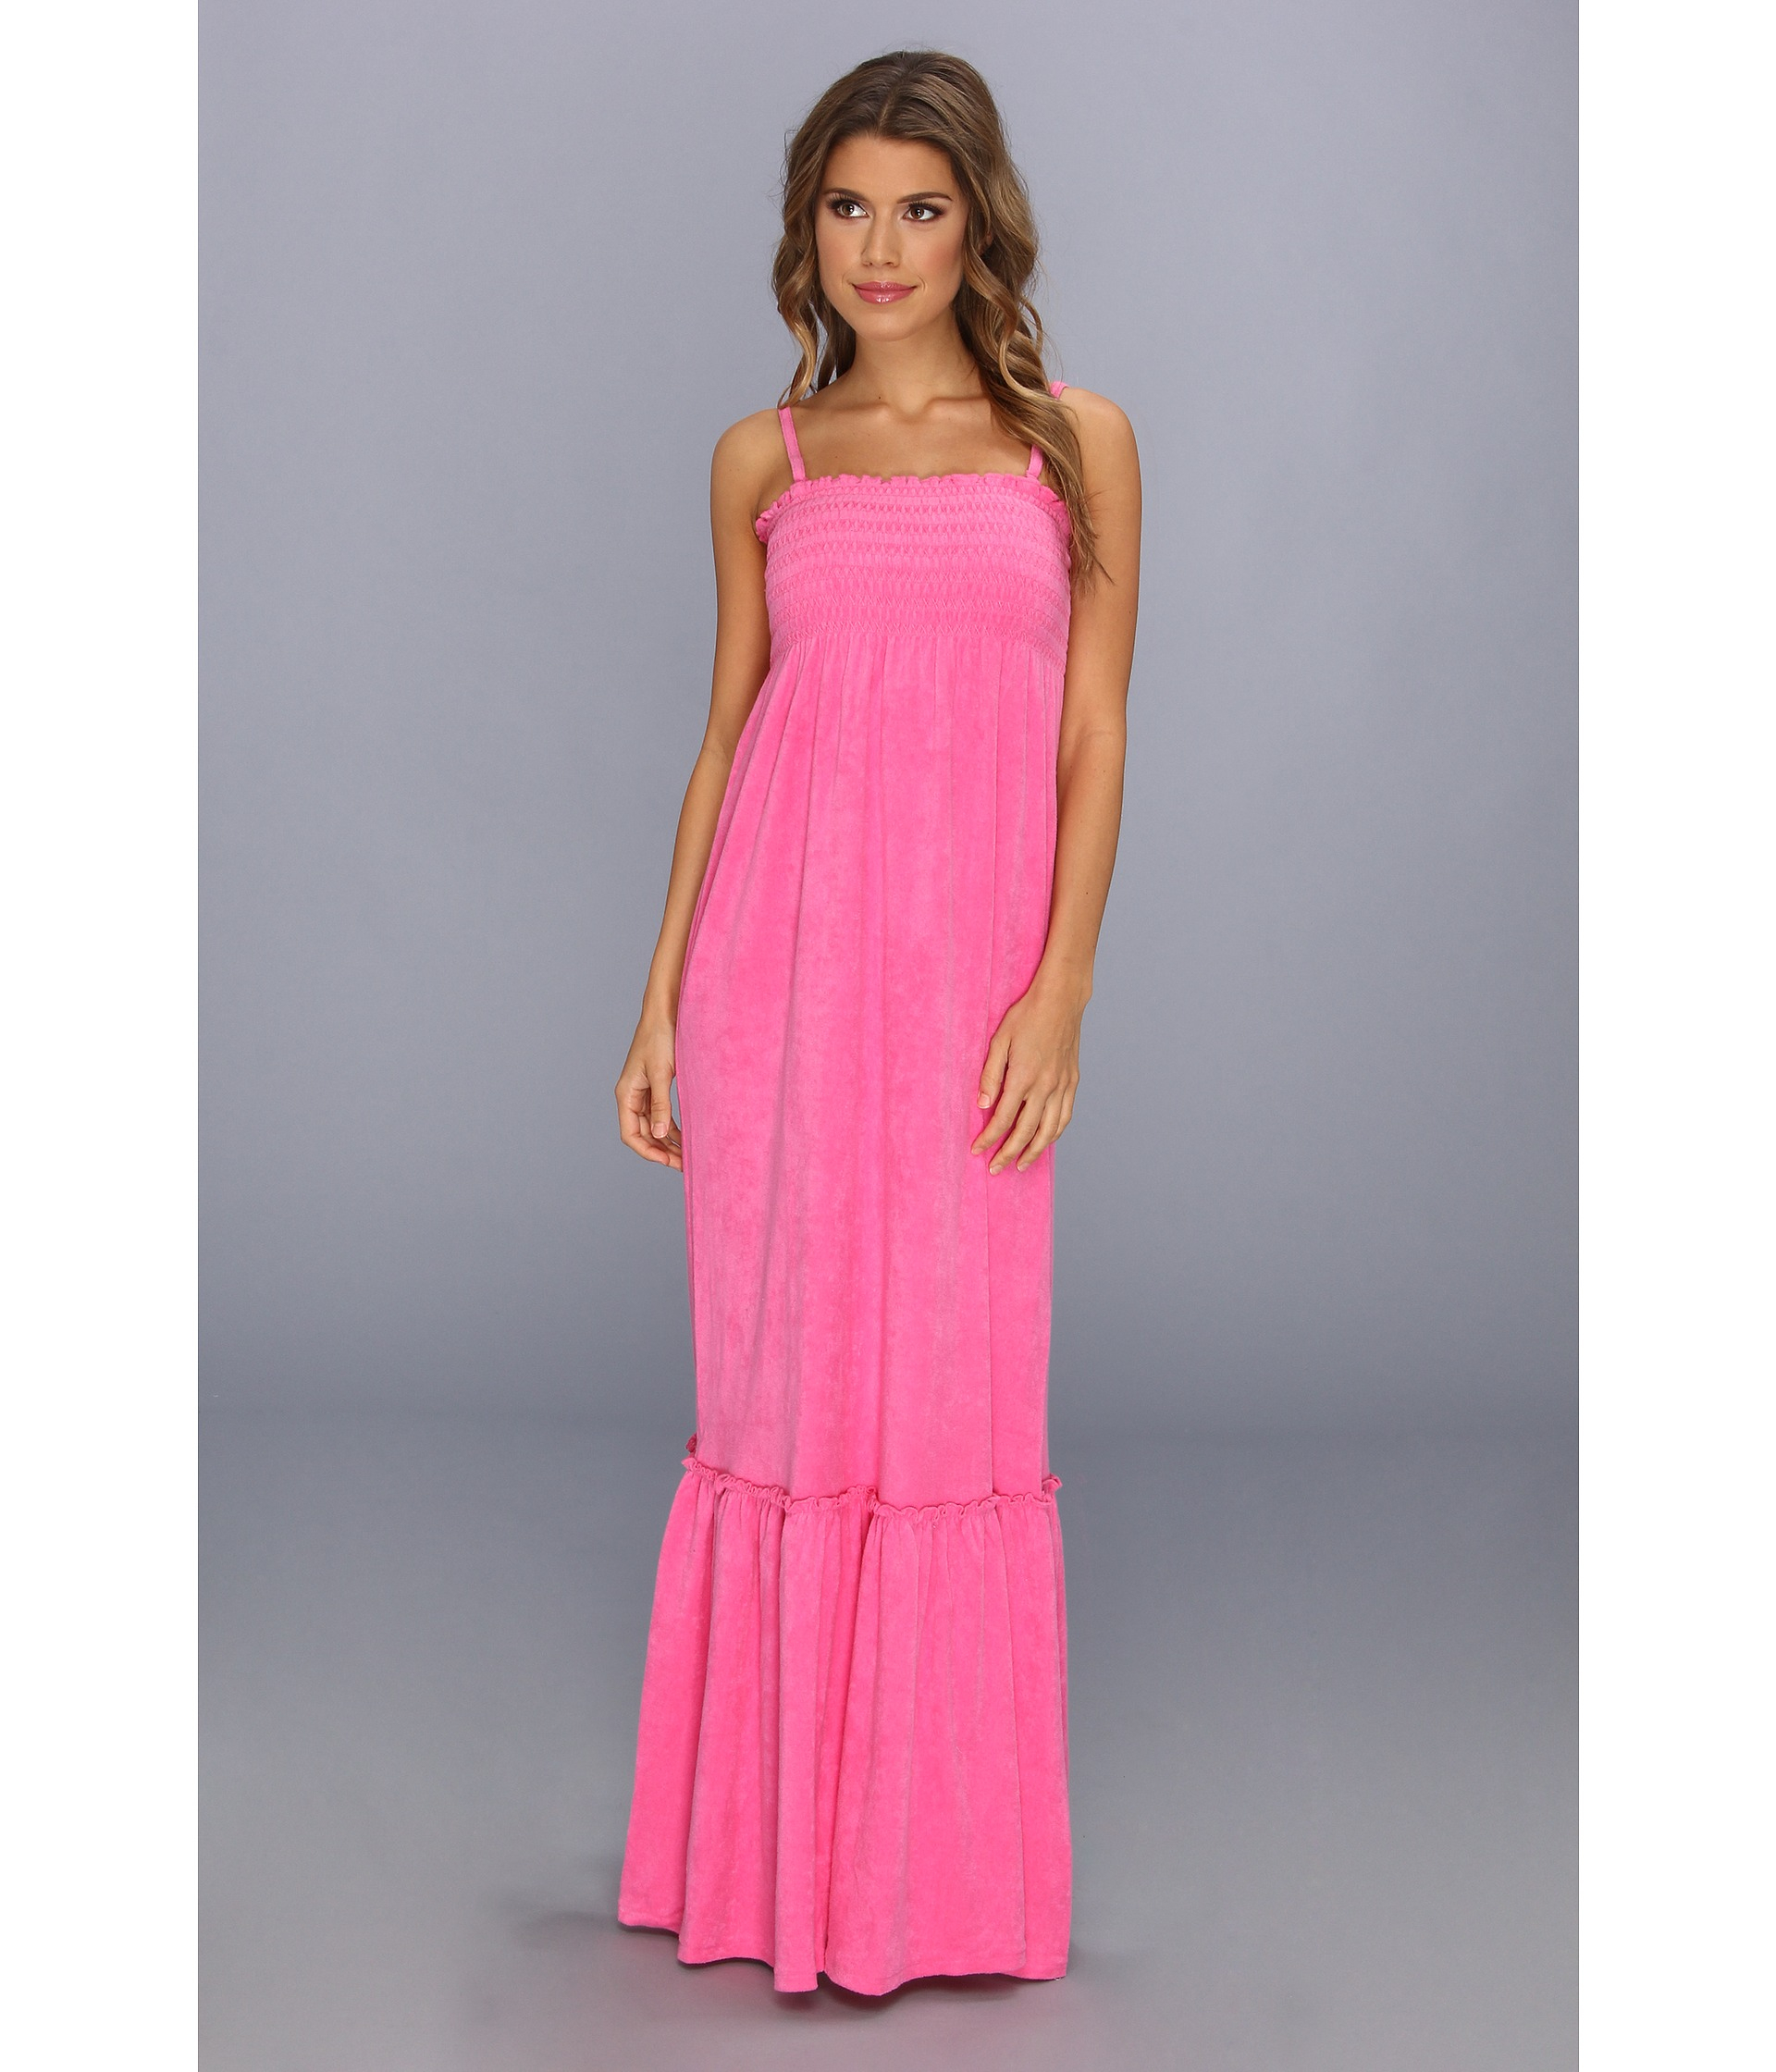 Lyst - Juicy Couture Micro Terry Smock Dress in Pink